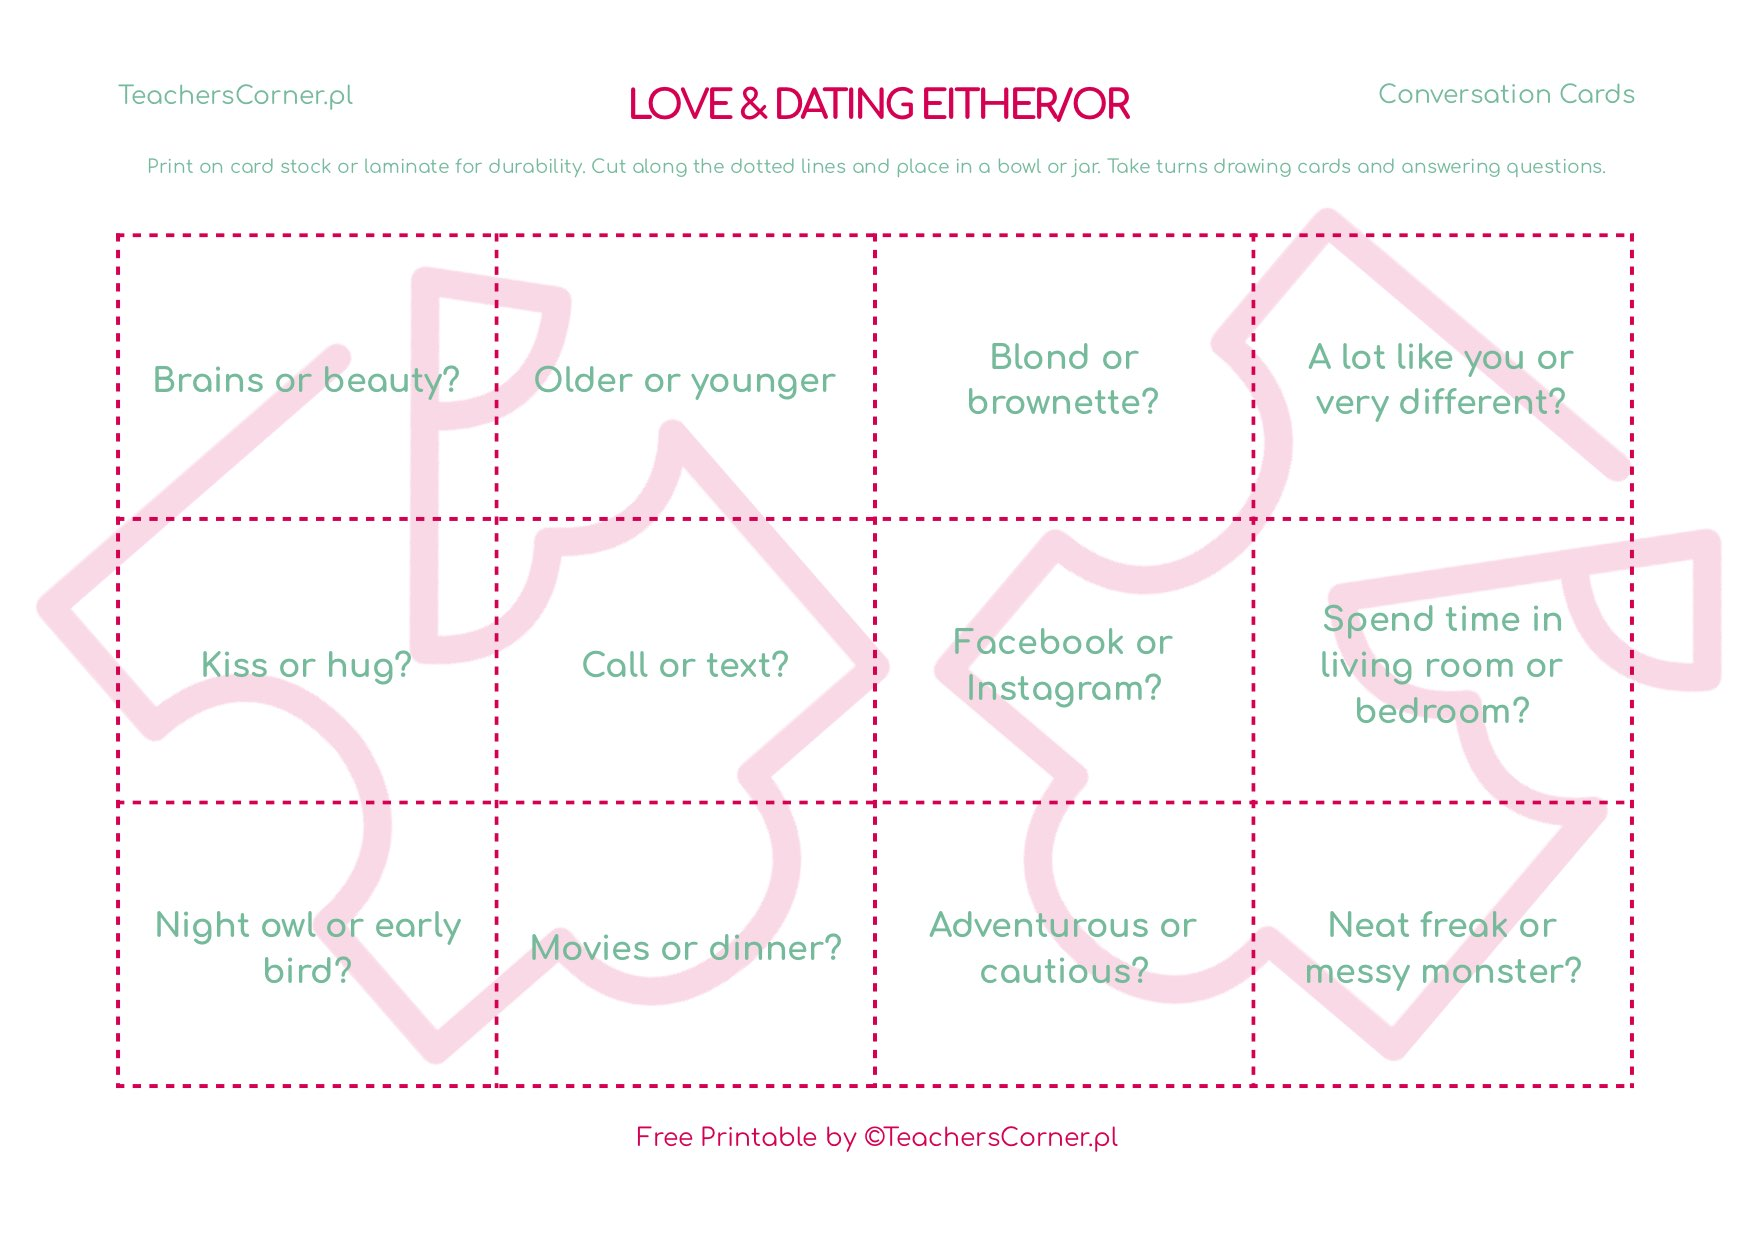 love and dating either or conversation cards